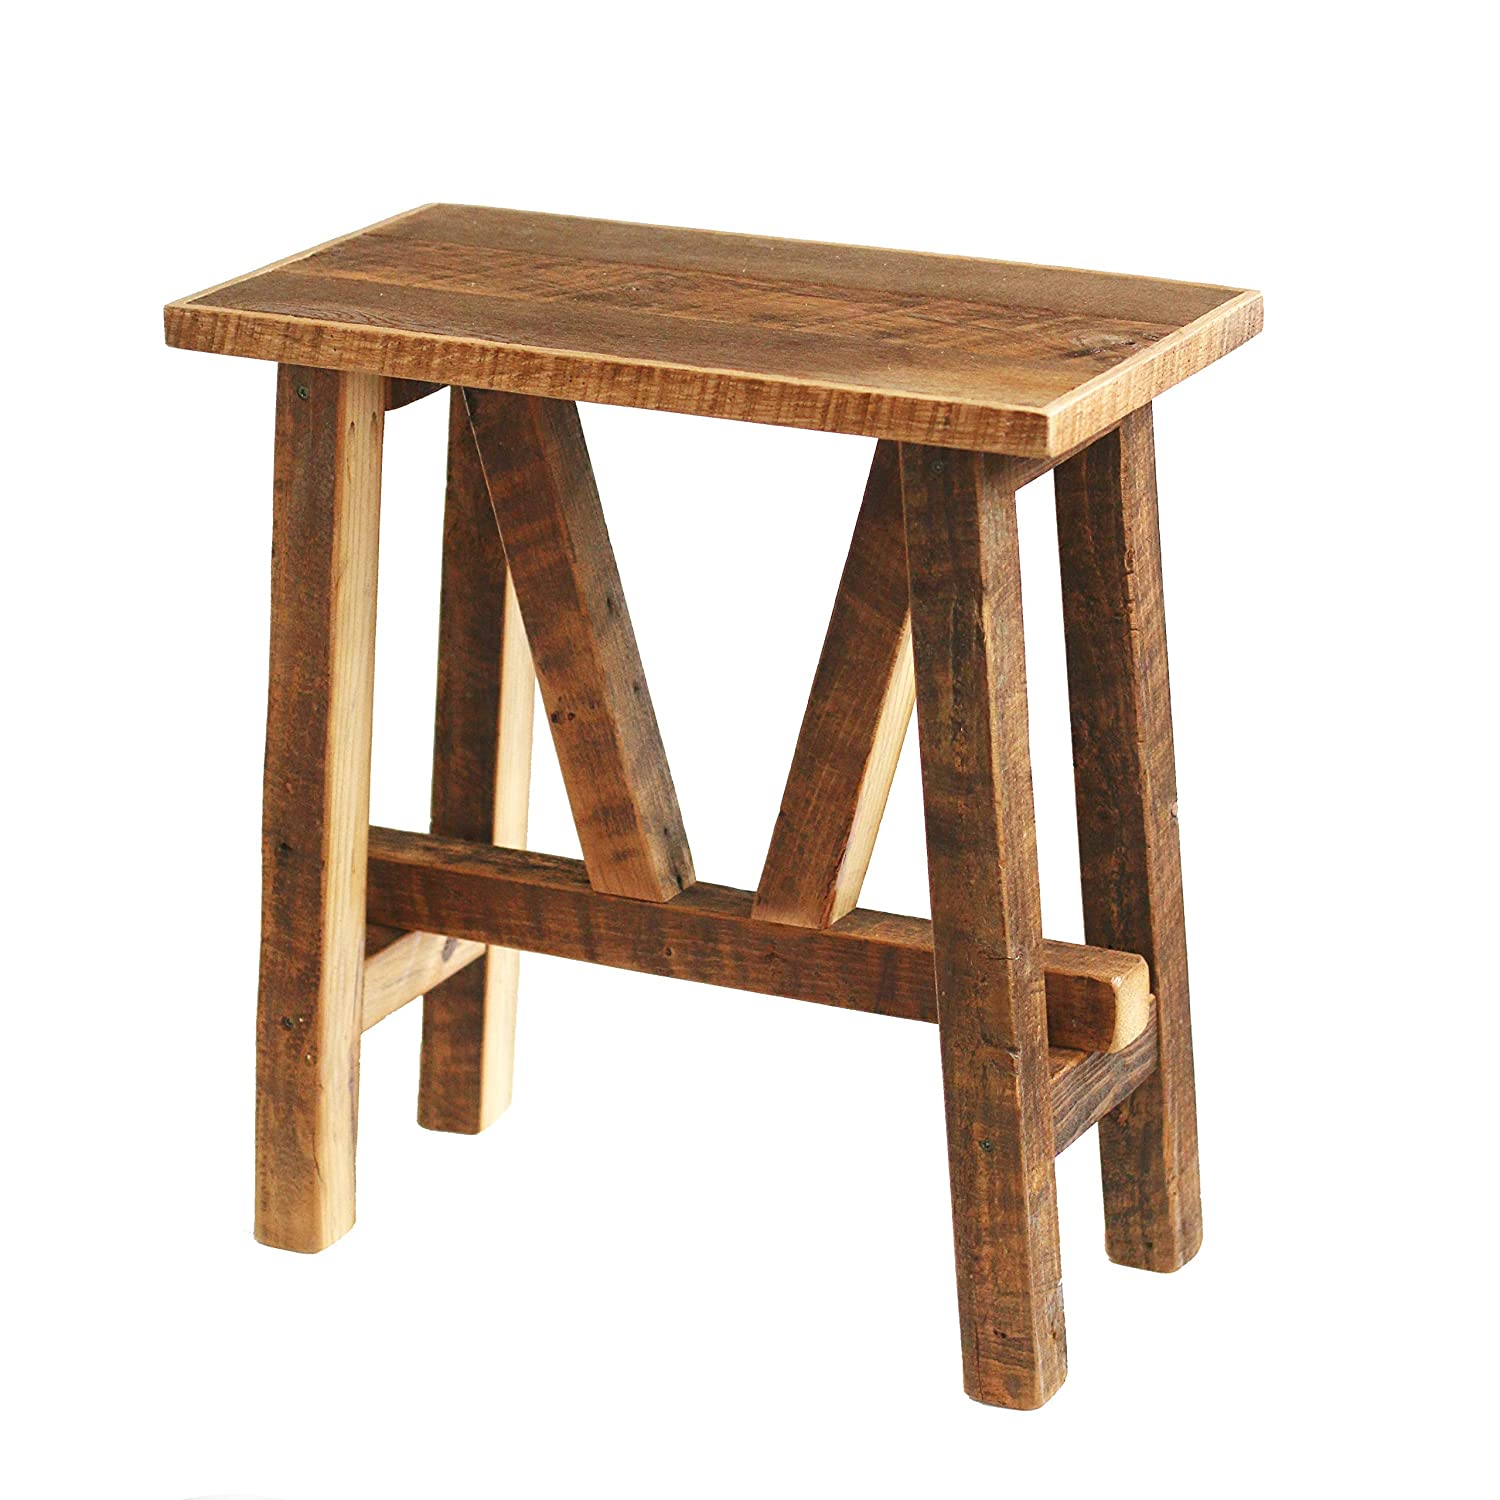 Reclaimed Wood End Time sale Table - Bedside Side Ta Accent Max 65% OFF Table-